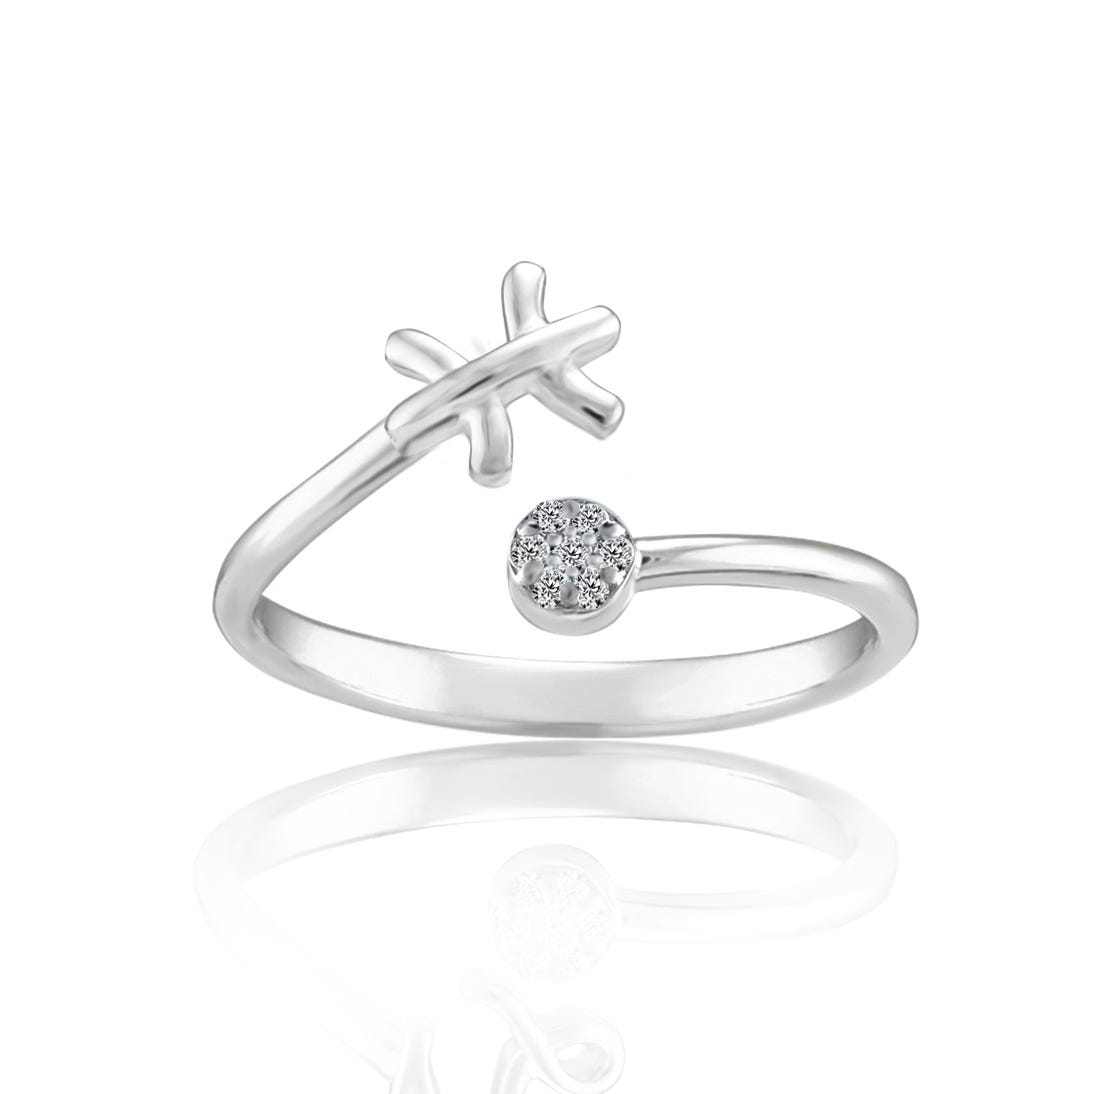 Zodiac Diamond Pisces Fashion Ring in Sterling Silver